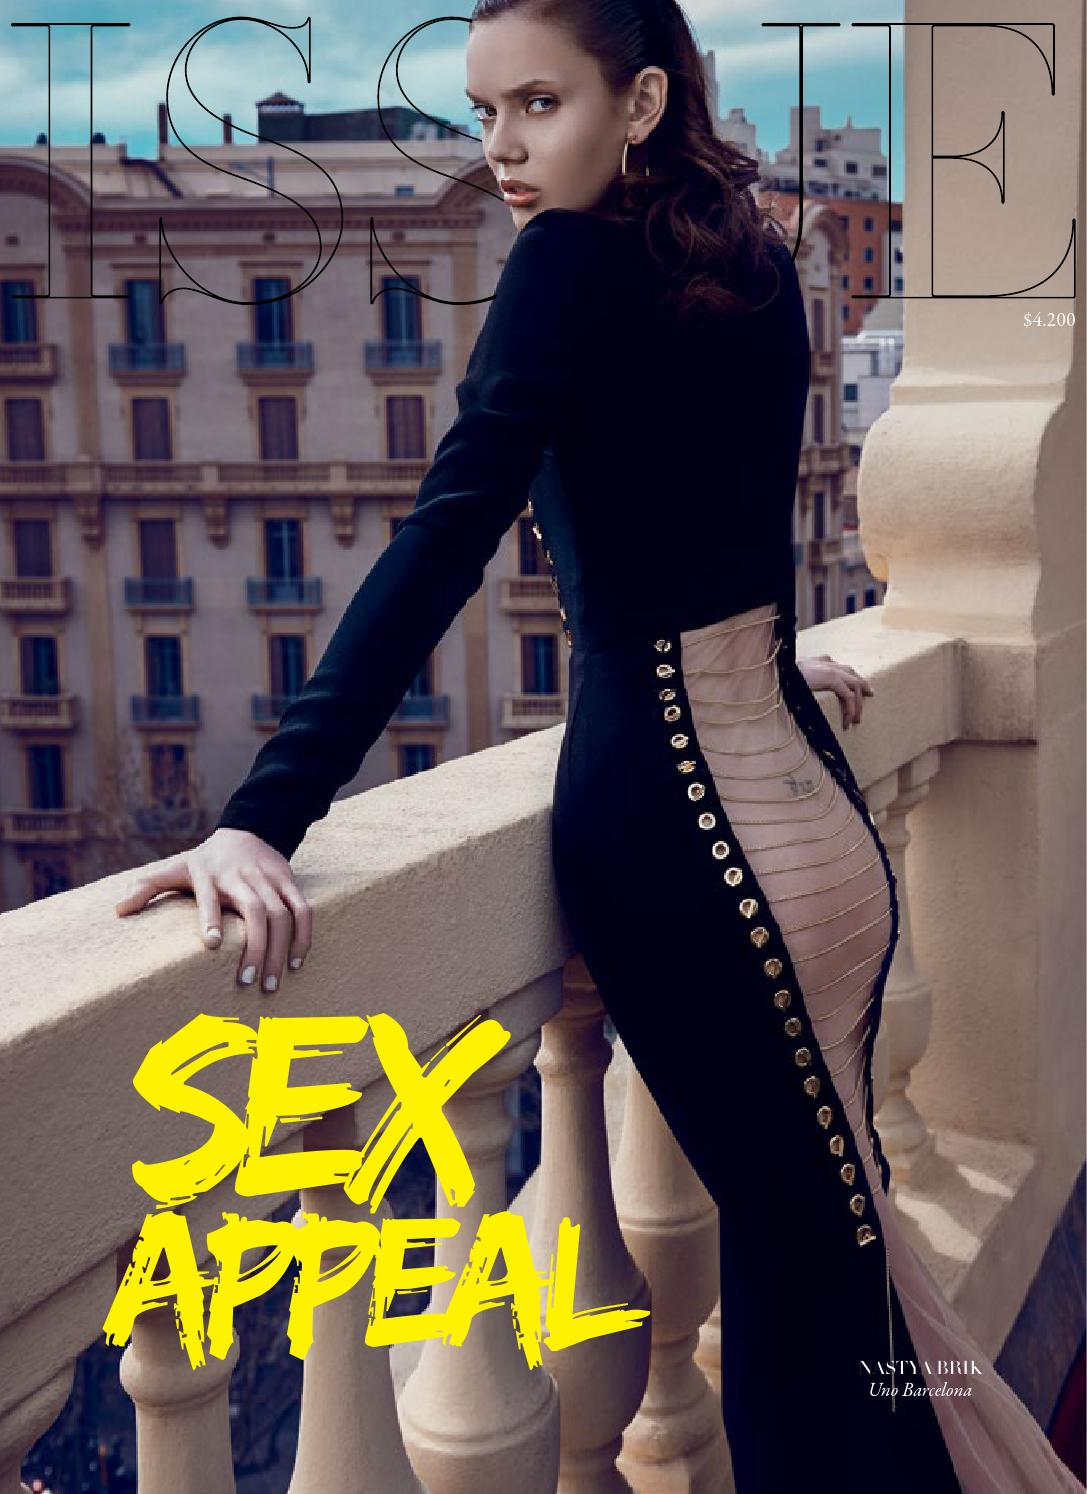 newest collection fae65 27700 ISSUE VI by Roberto Torres M. - issuu